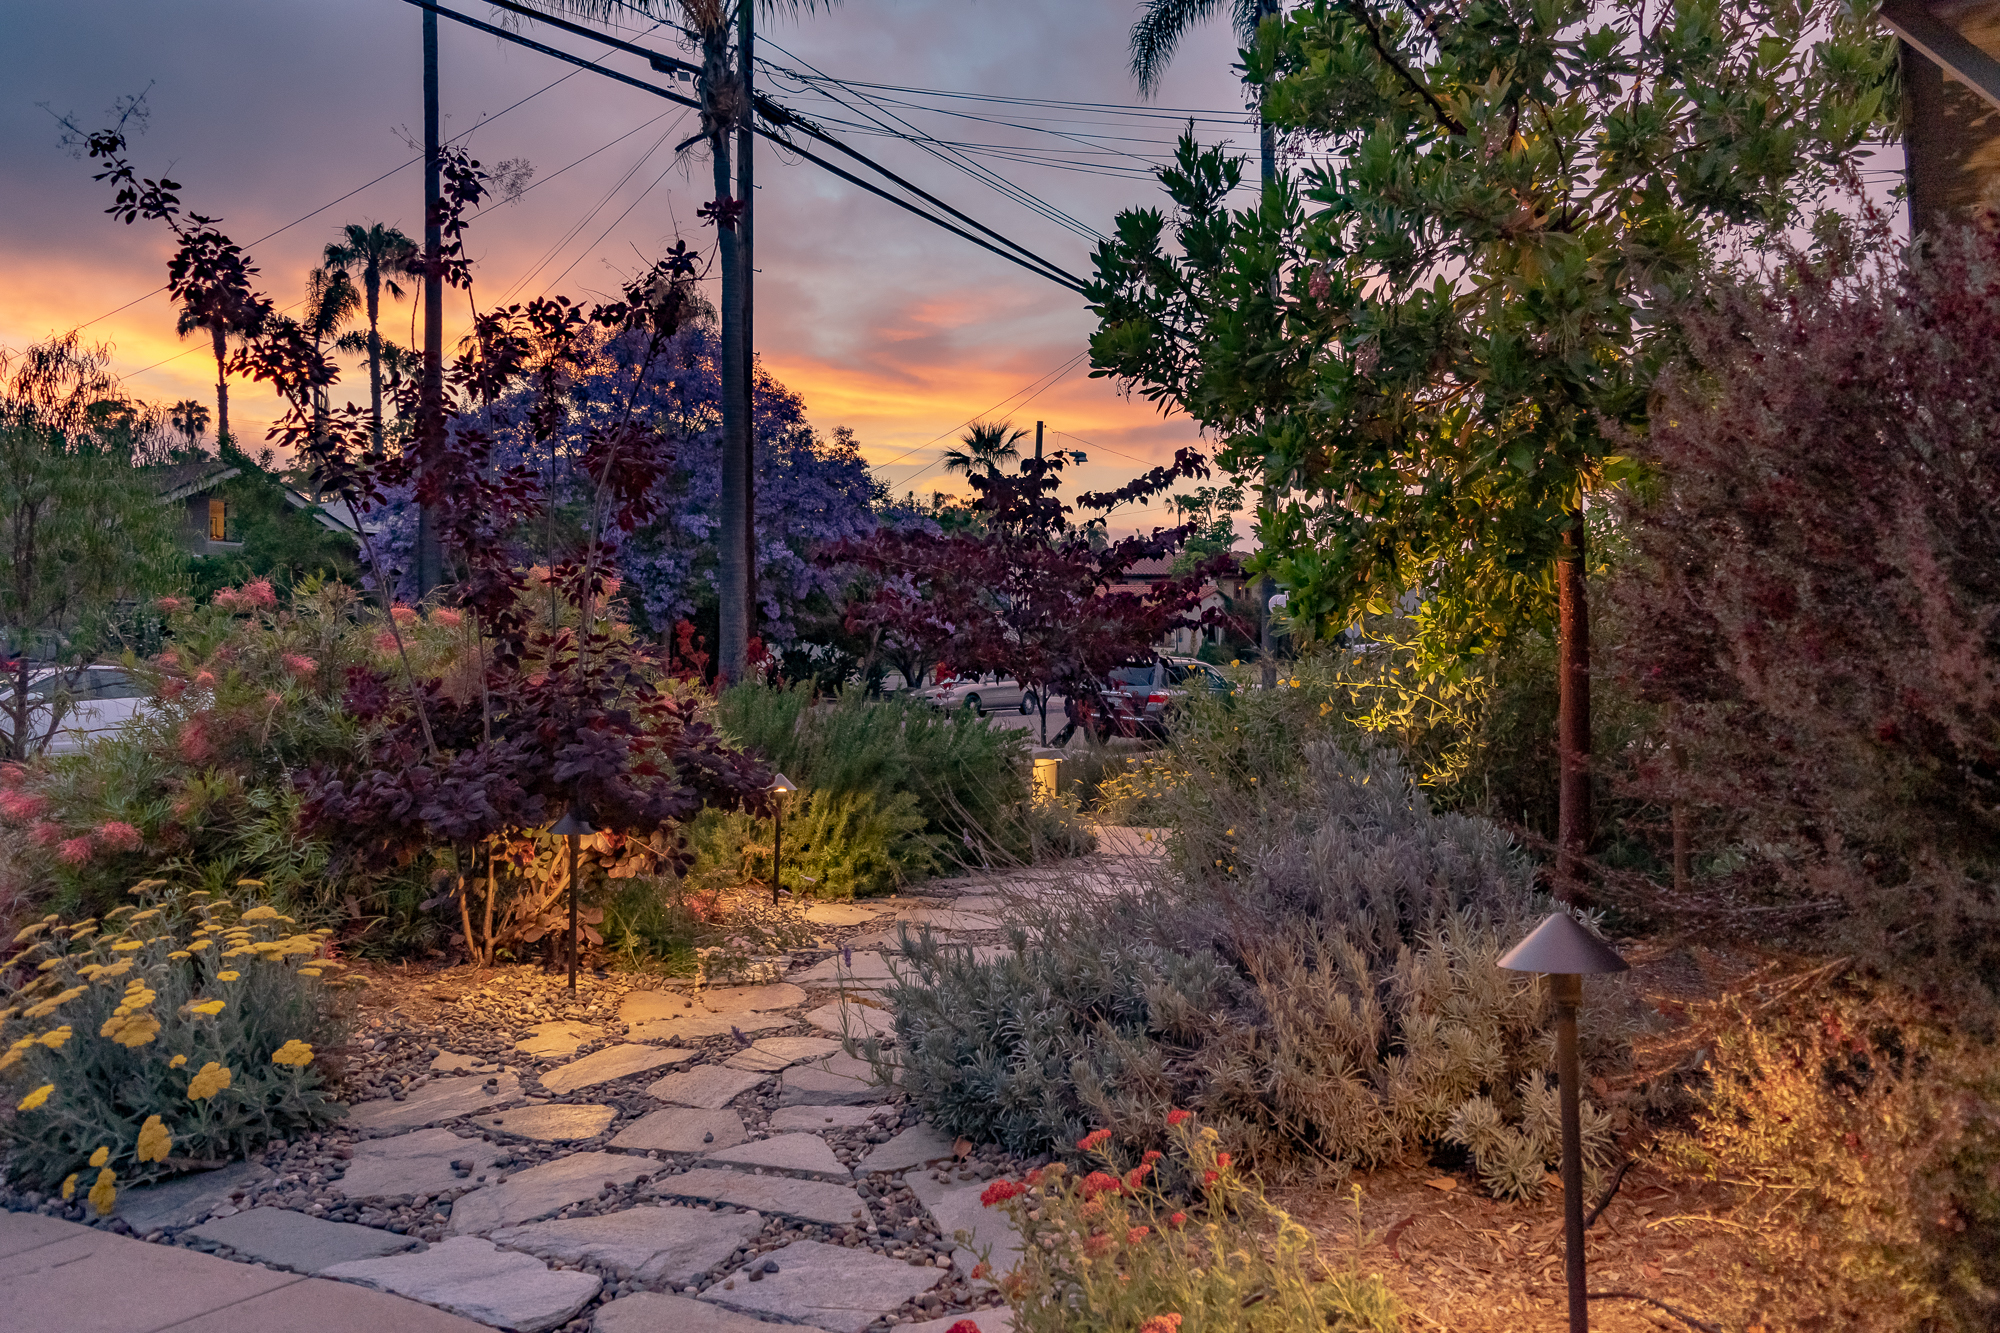 The Gold Hive Landscape Lighting Kichler How To California Garden Front Yard-0266.jpg